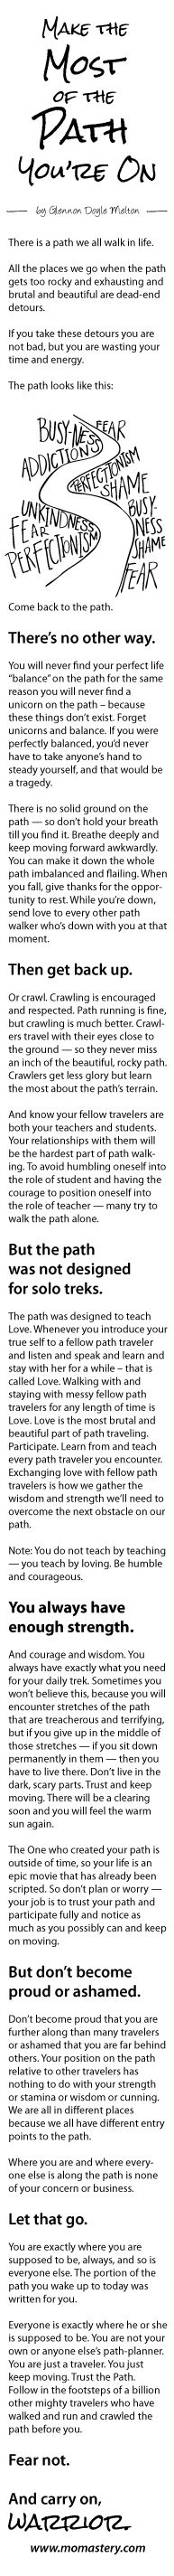 """Inspiration... """"make the Most of the Path You're On"""" post by Glennon Doyle Melton of http://momastery.com/"""